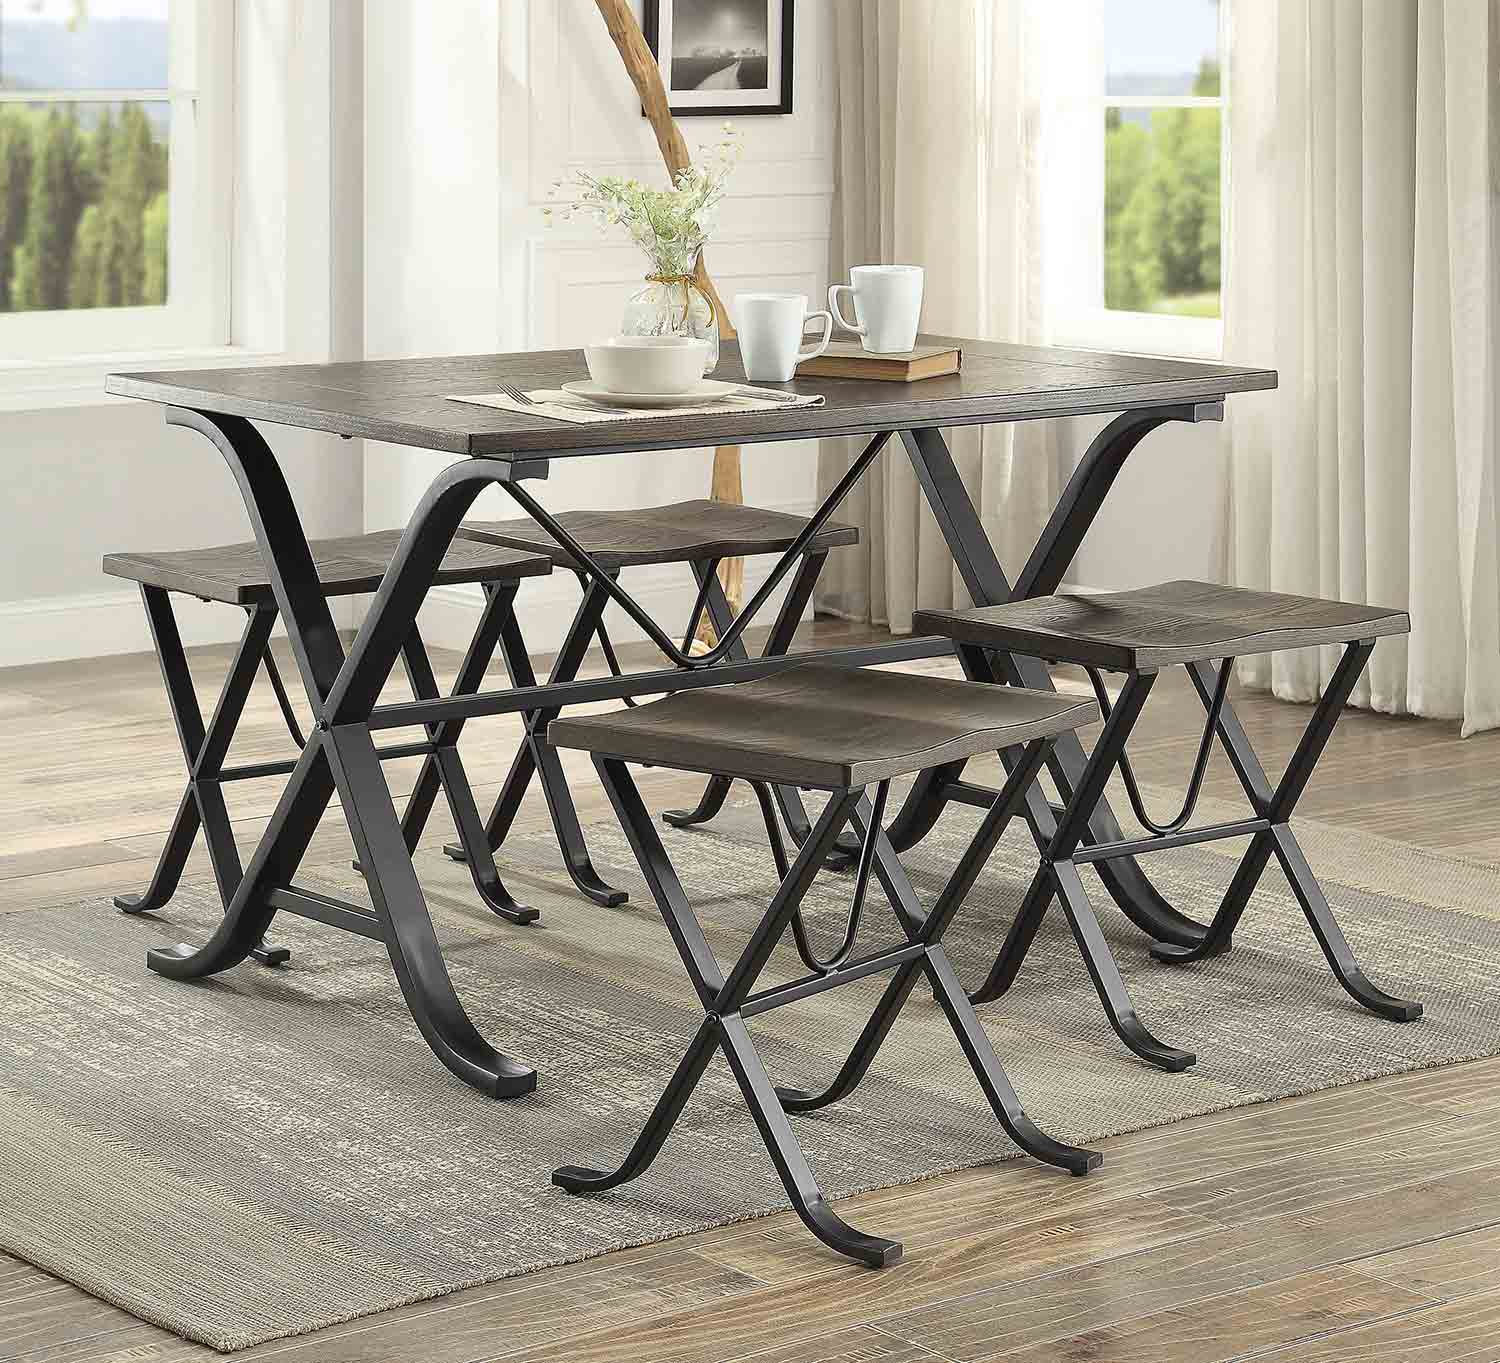 Homelegance Westerlyn 5-Piece Dining Set - Burnished - Black Metal